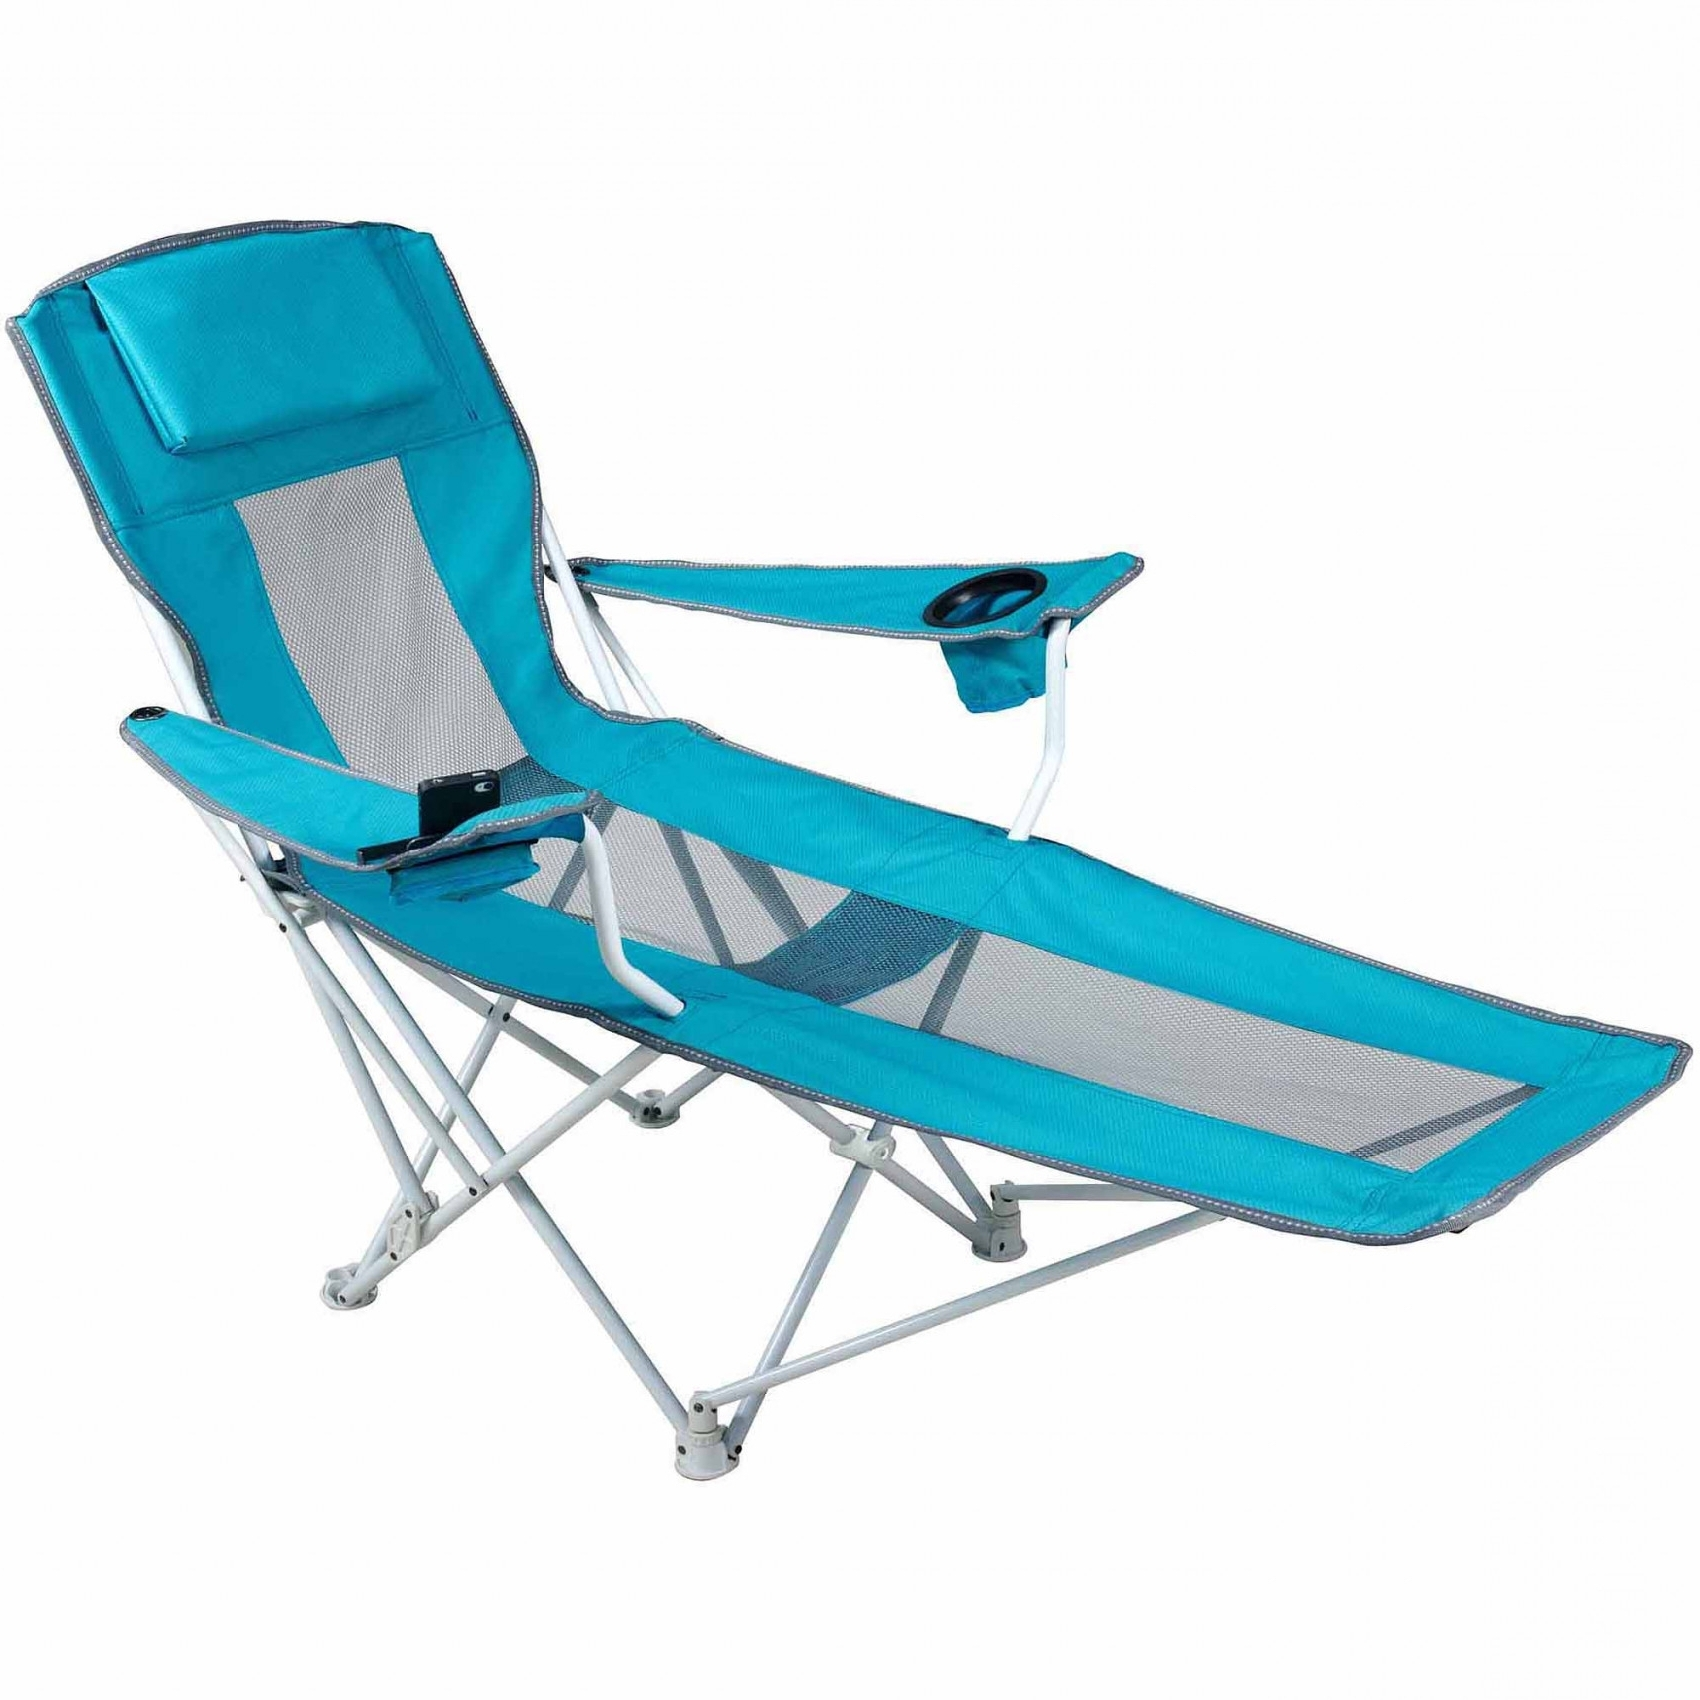 Reclining Beach Chairs In Inside Ostrich Chair Folding Chaise Lounges (View 15 of 15)